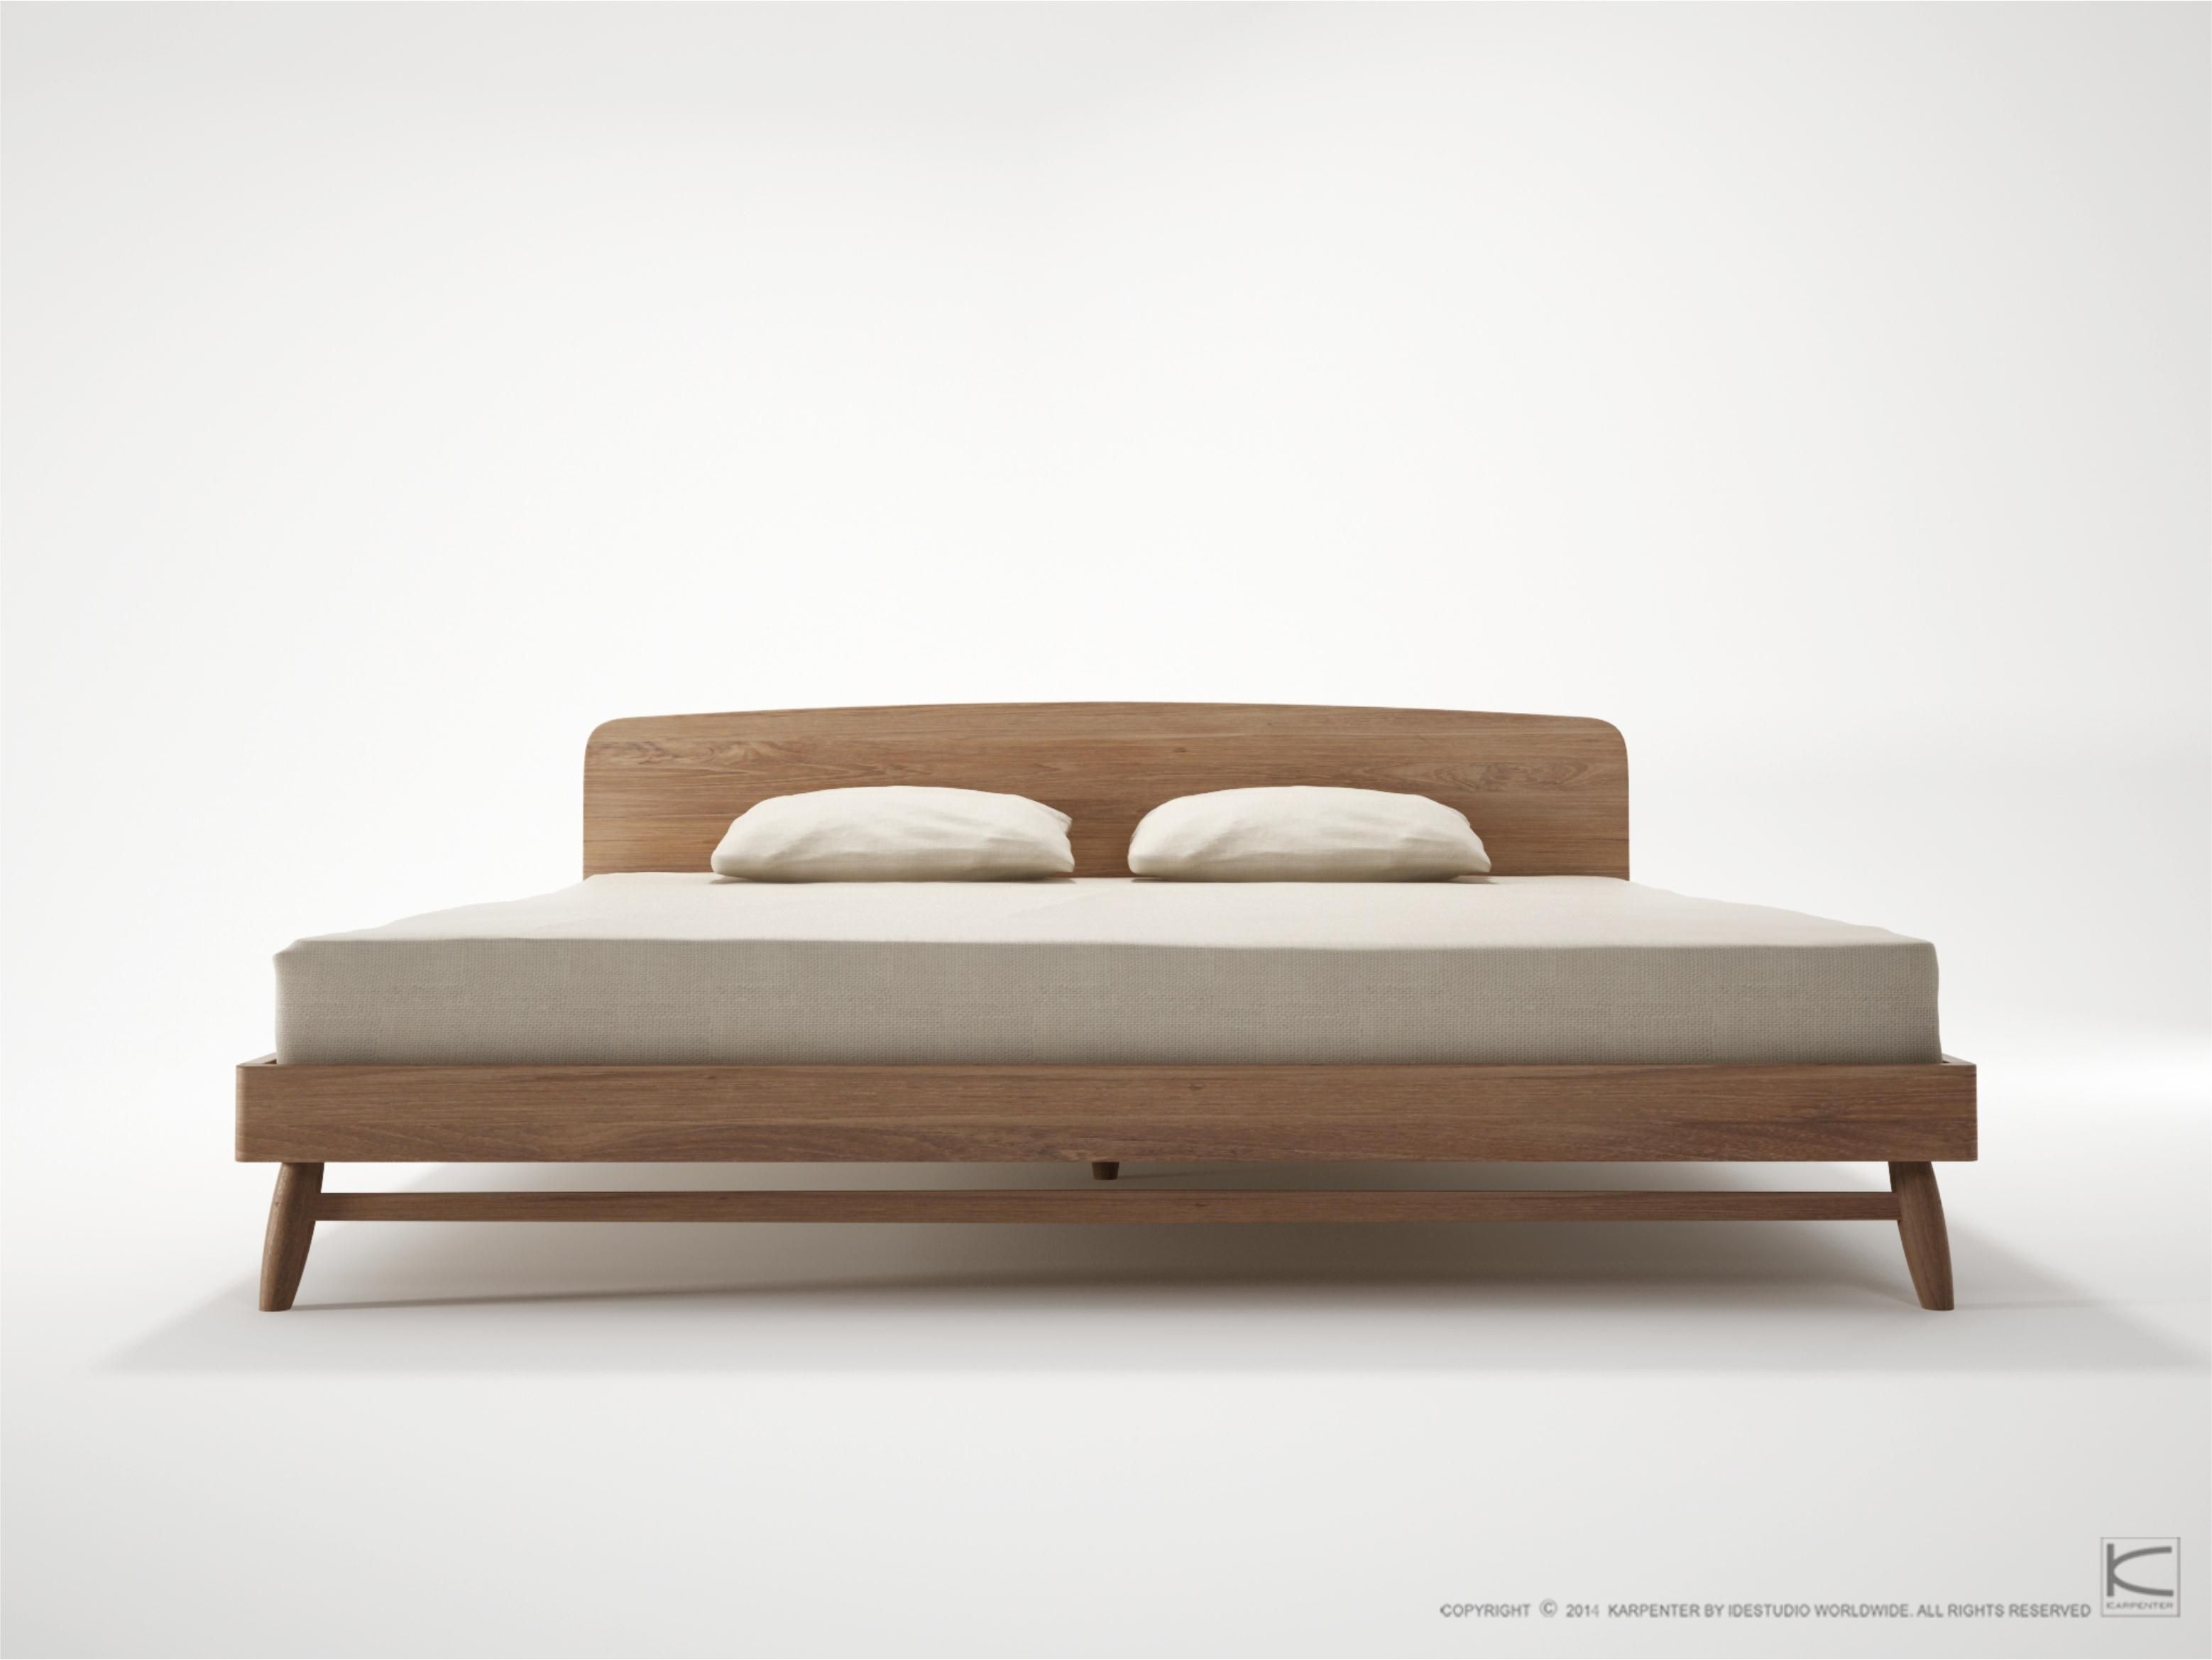 Uncategorized Single Or Double Bed designed to relieve stress and bring the mind back simpler times twist single double beds34